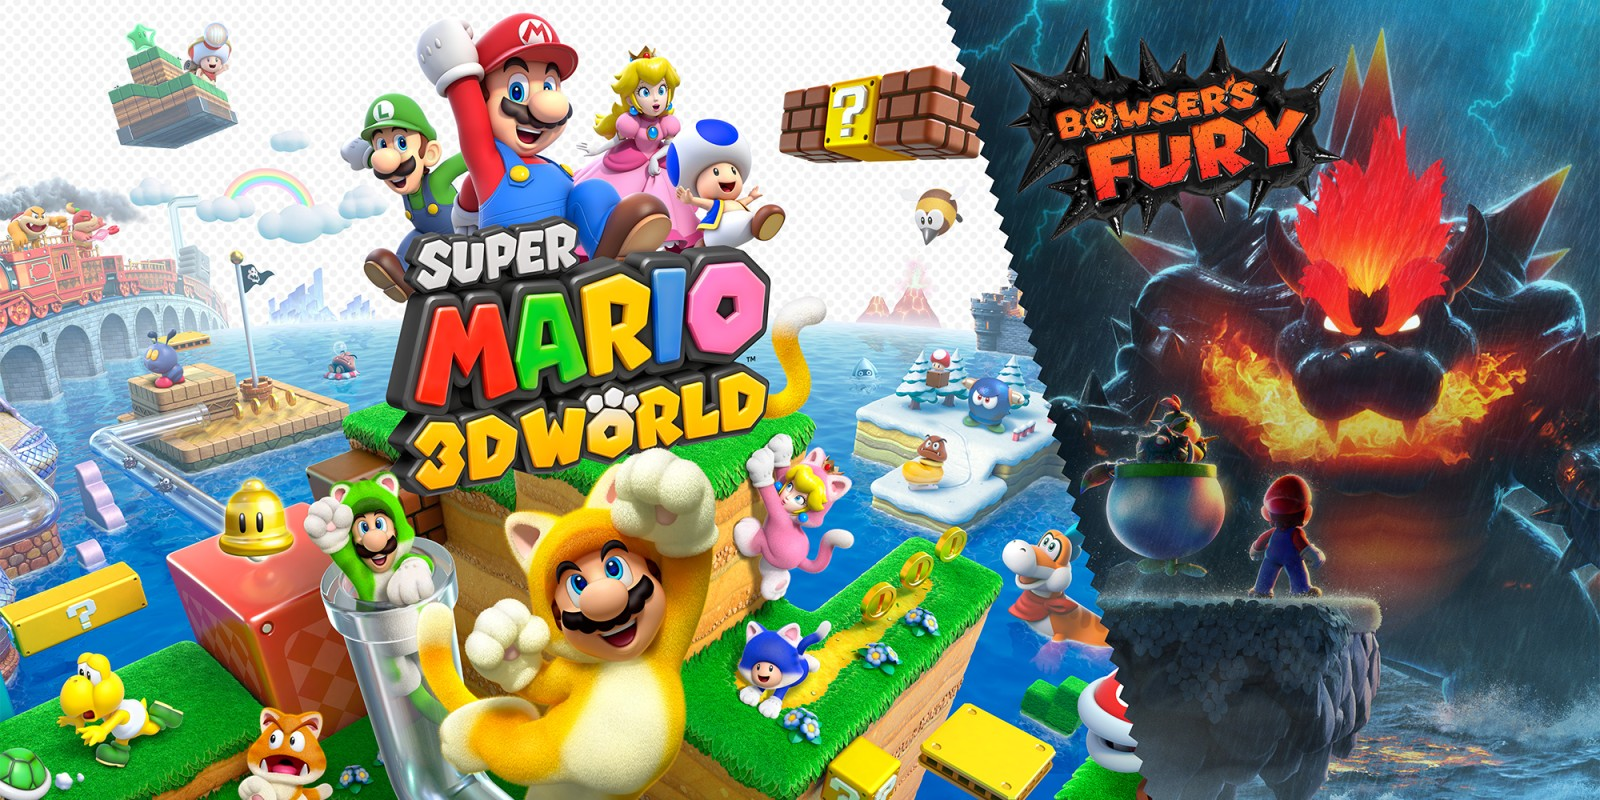 Veredito de Super Mario 3D World + Bowser's Fury